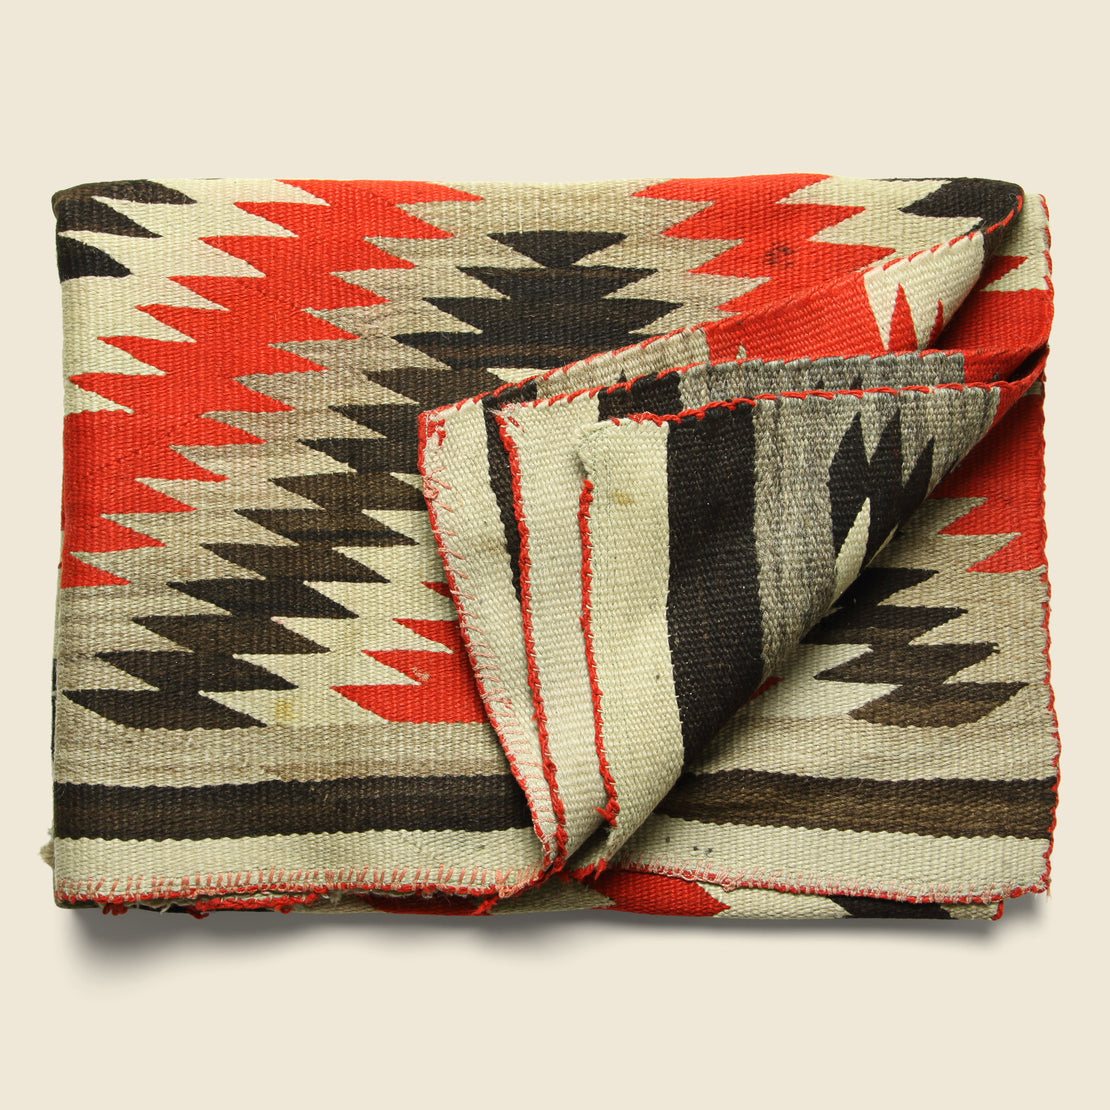 Hand-Woven Navajo Wool Rug - Red/Black/Grey/Cream